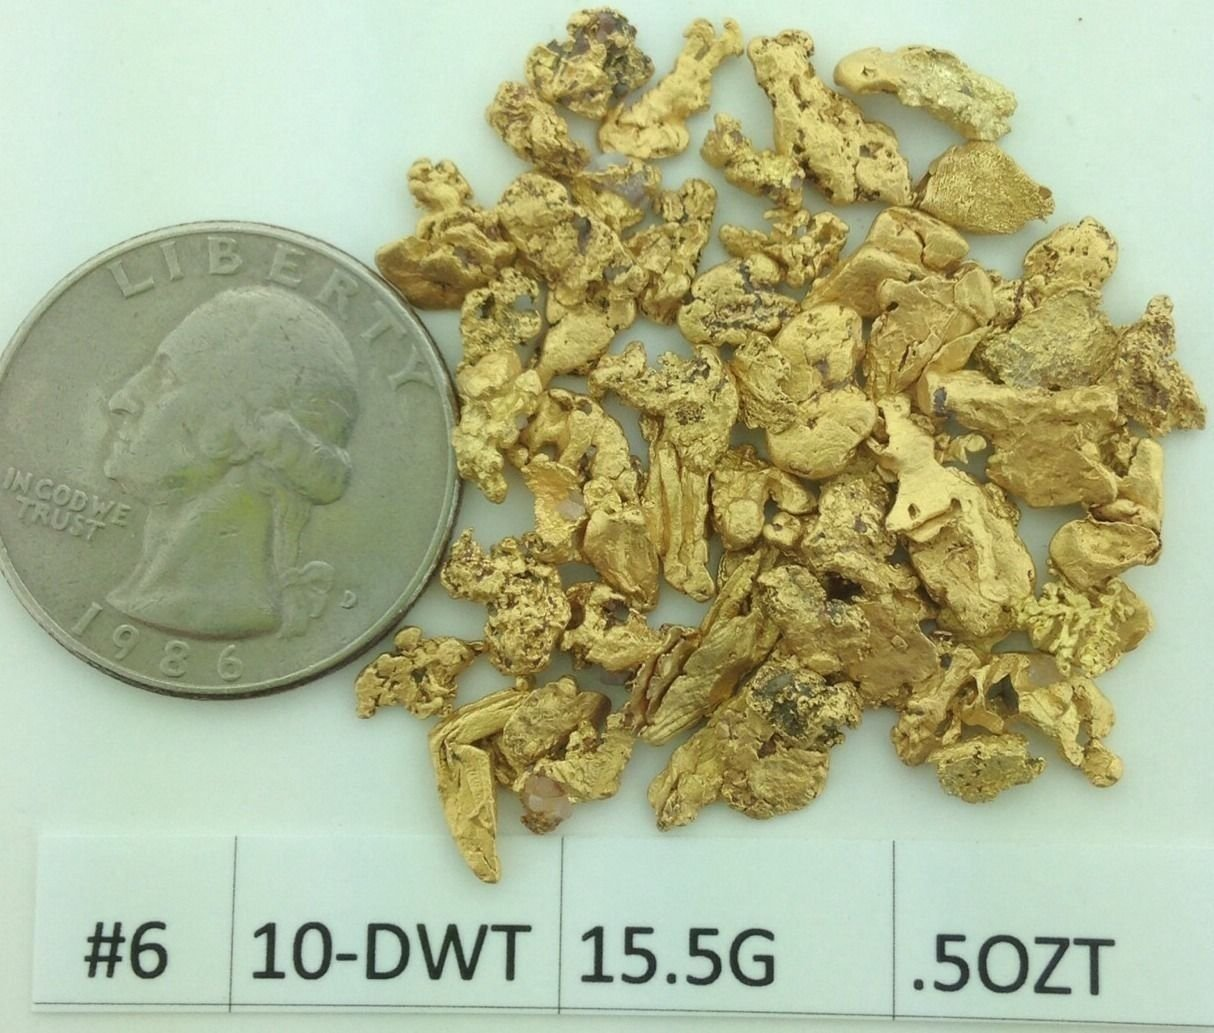 Alaskan Yukon Bc Gold Rush Nuggets #6 Mesh 1/2 Troy Oz 15.5 Grams Or 10 Dwt Flake